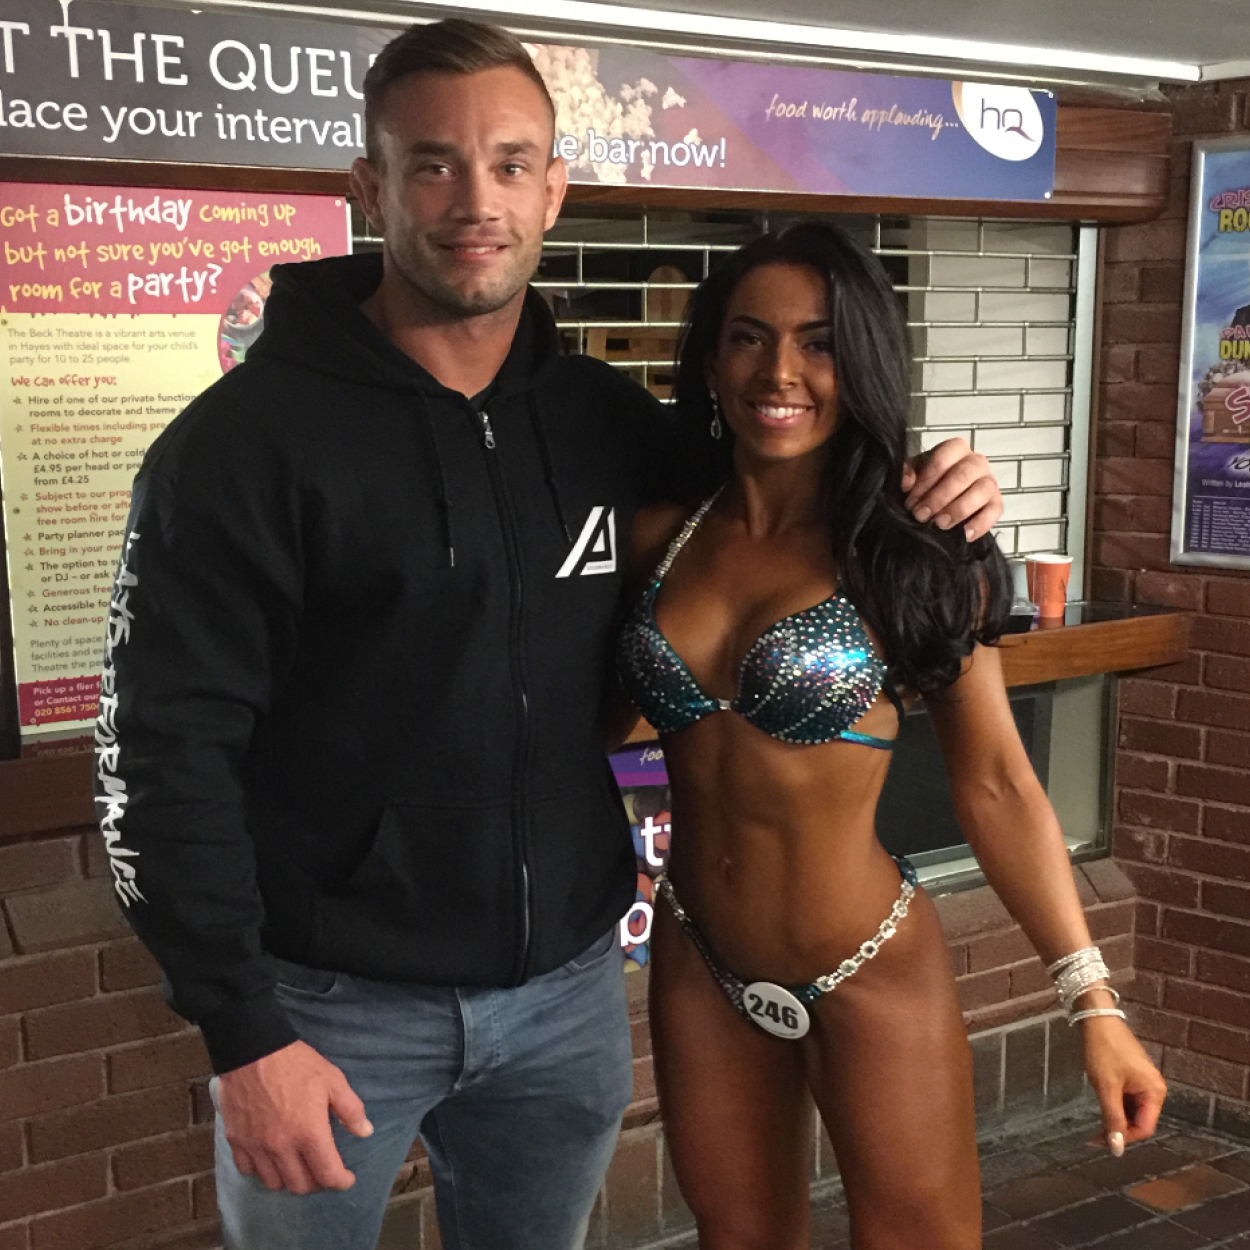 """HELEN PEEBLES   """"I came to Adam having not really had a structured diet before and was not tracking my macros. I had only been weight training for 8 months and decided I wanted to enter my first competition (two in one weekend actually).  The progress I made in the 14 week prep with Adam was incredible and I got into the best shape I had ever been in and placed in my first two competitions with some very tough competitors!  I was worried at first when I wasn't seeing results straight away, but I thankfully trusted Adam and the process. His extensive knowledge and experience shone through and he has gave me the extra confidence I needed in myself. Thank you again!"""""""